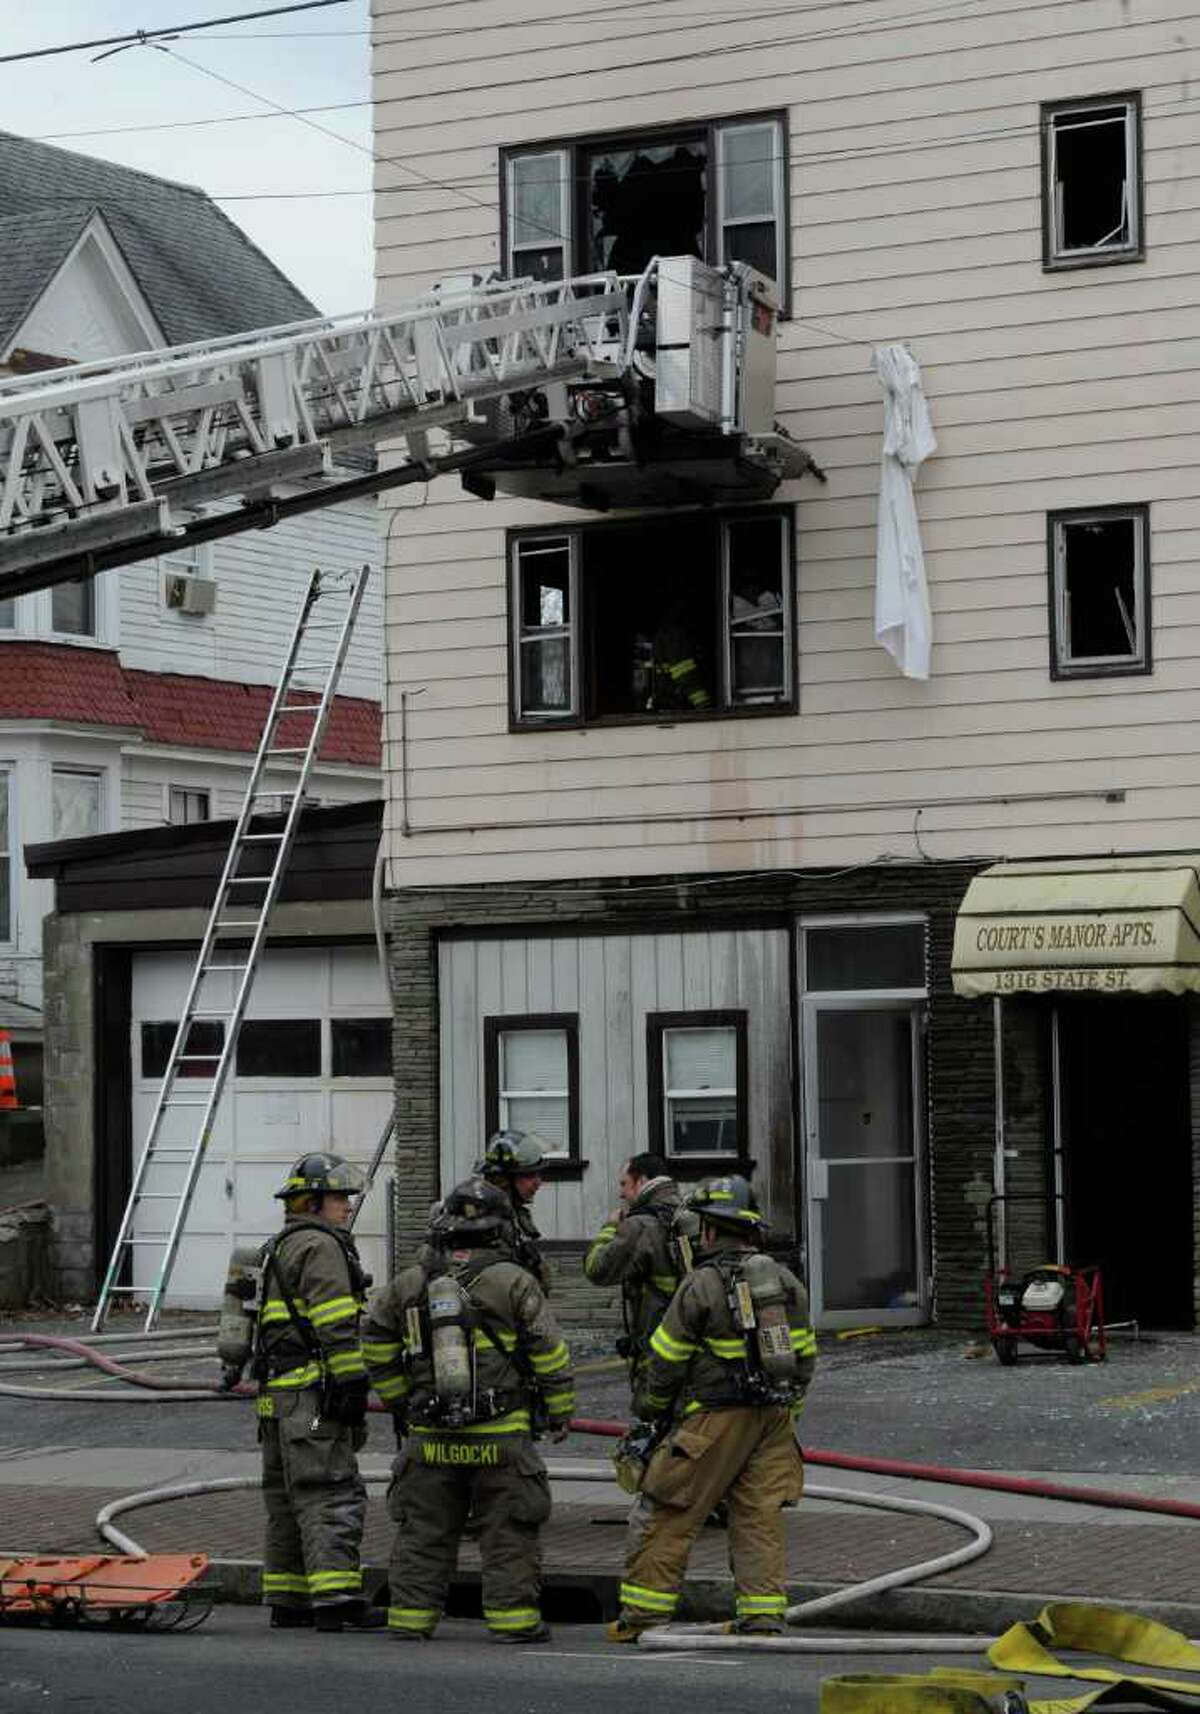 Schenectady firefighters are near the Court's Manor Apartments at 1316 State St. in Schenectady, N.Y. after fire forced residents from the building on Wednesday, Feb. 15, 2012. (Skip Dickstein / Times Union)